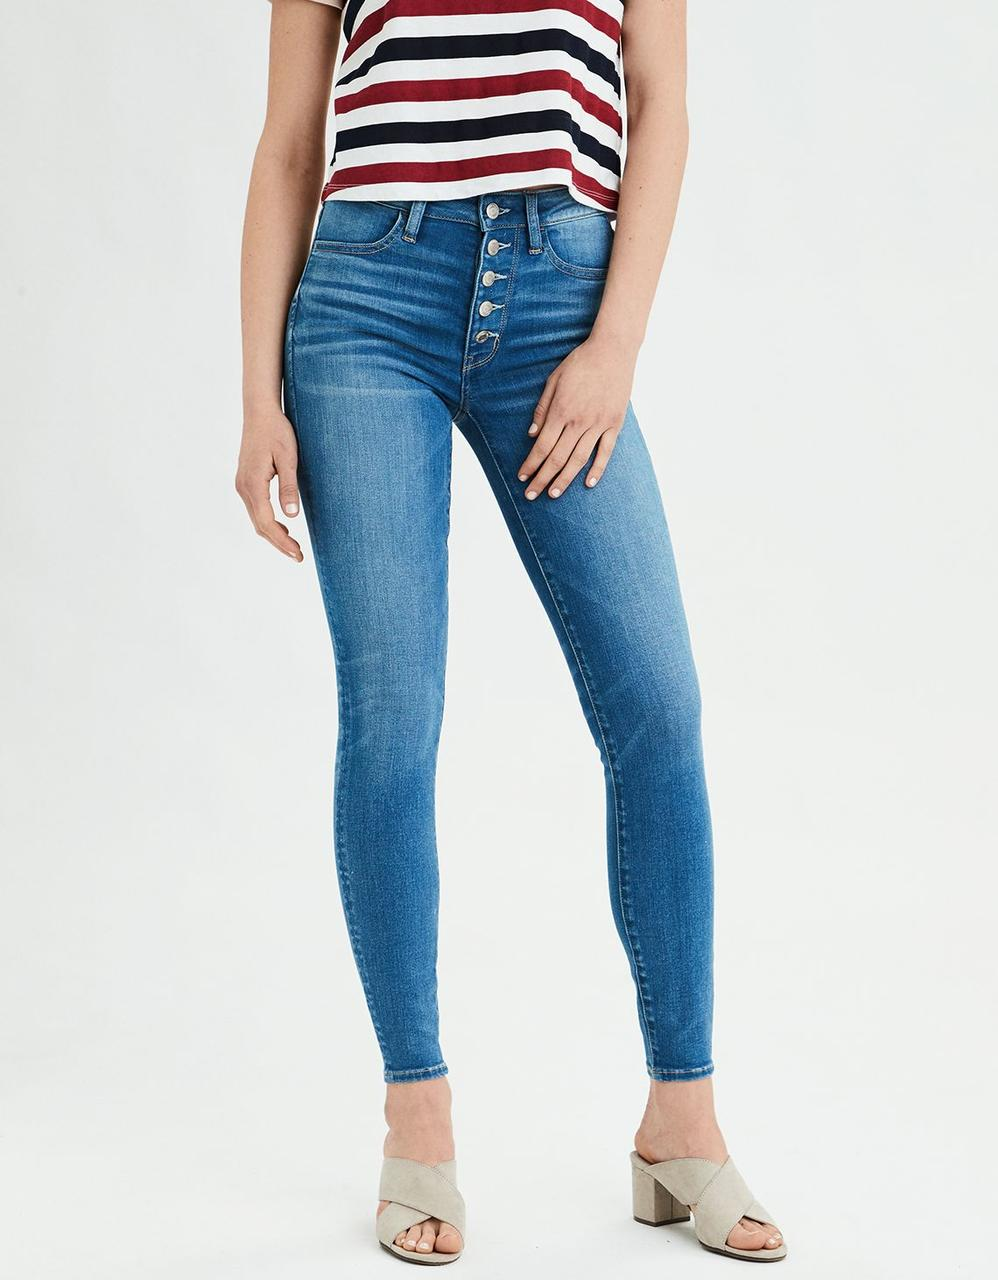 df992a79e15f9 American Eagle Jeans, AE NE(X)T LEVEL SUPER HIGH-WAISTED JEGGING for ...